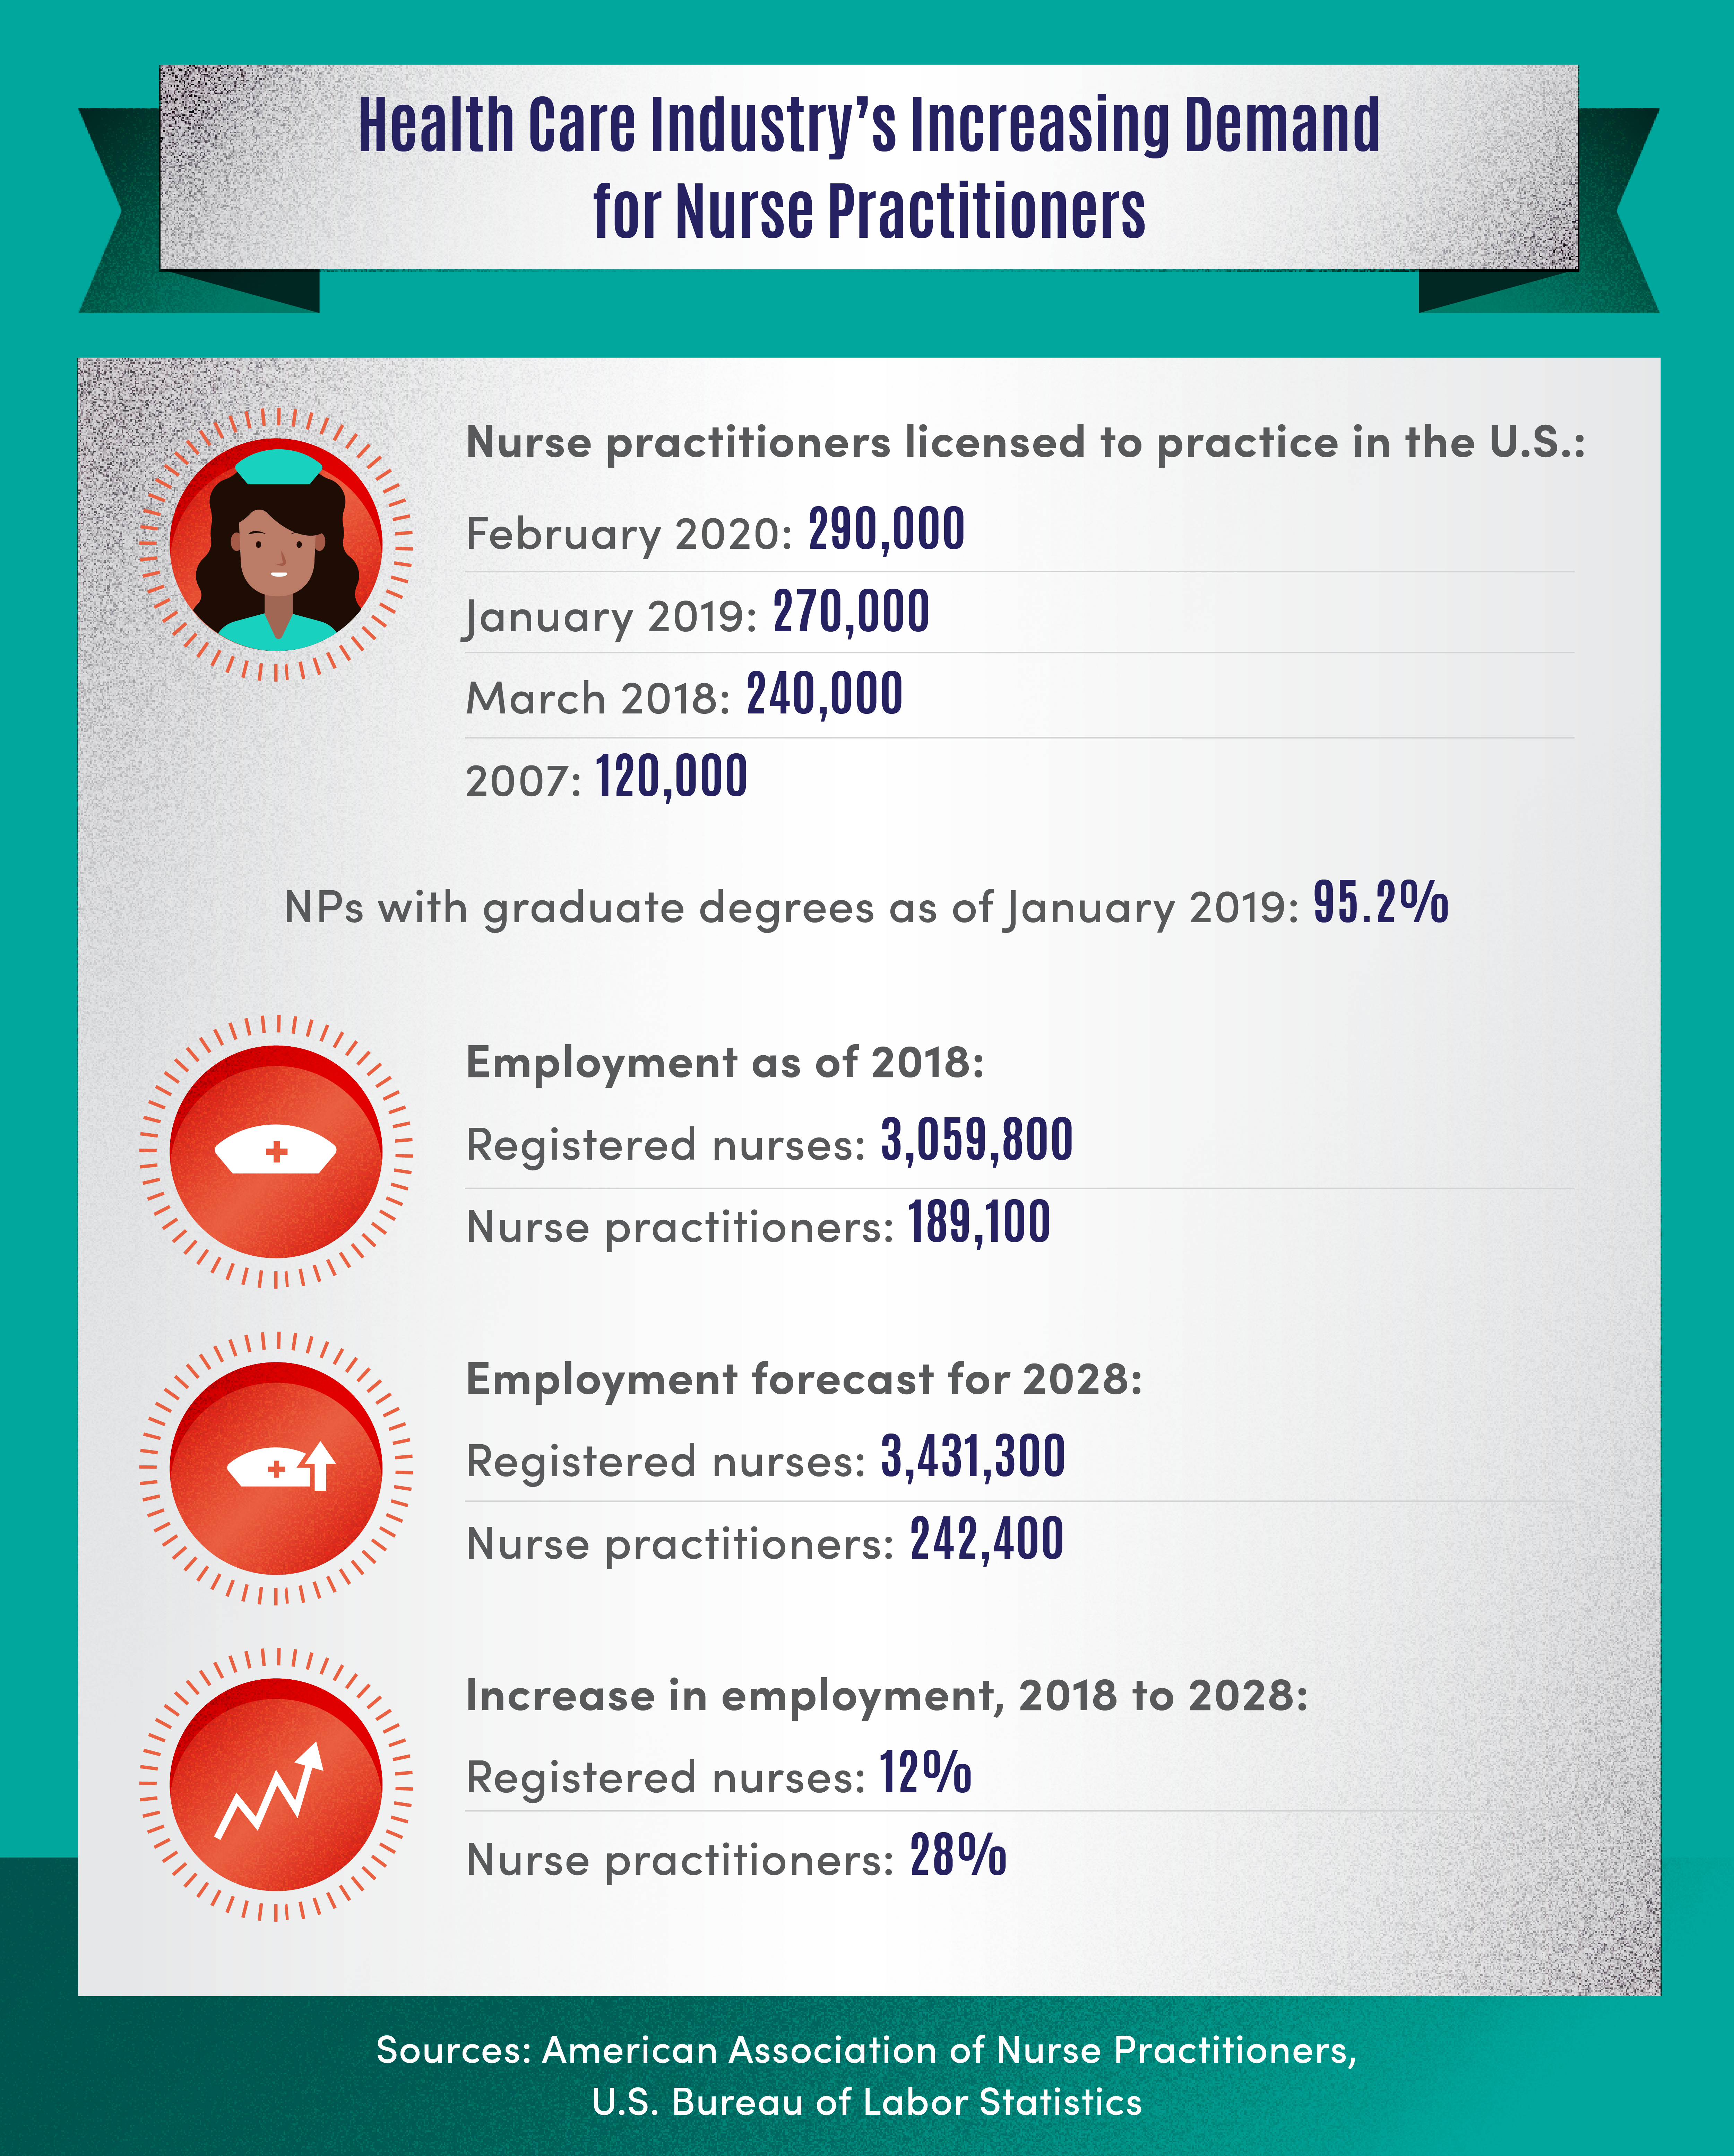 graphic of increasing demand for nurse practitioners